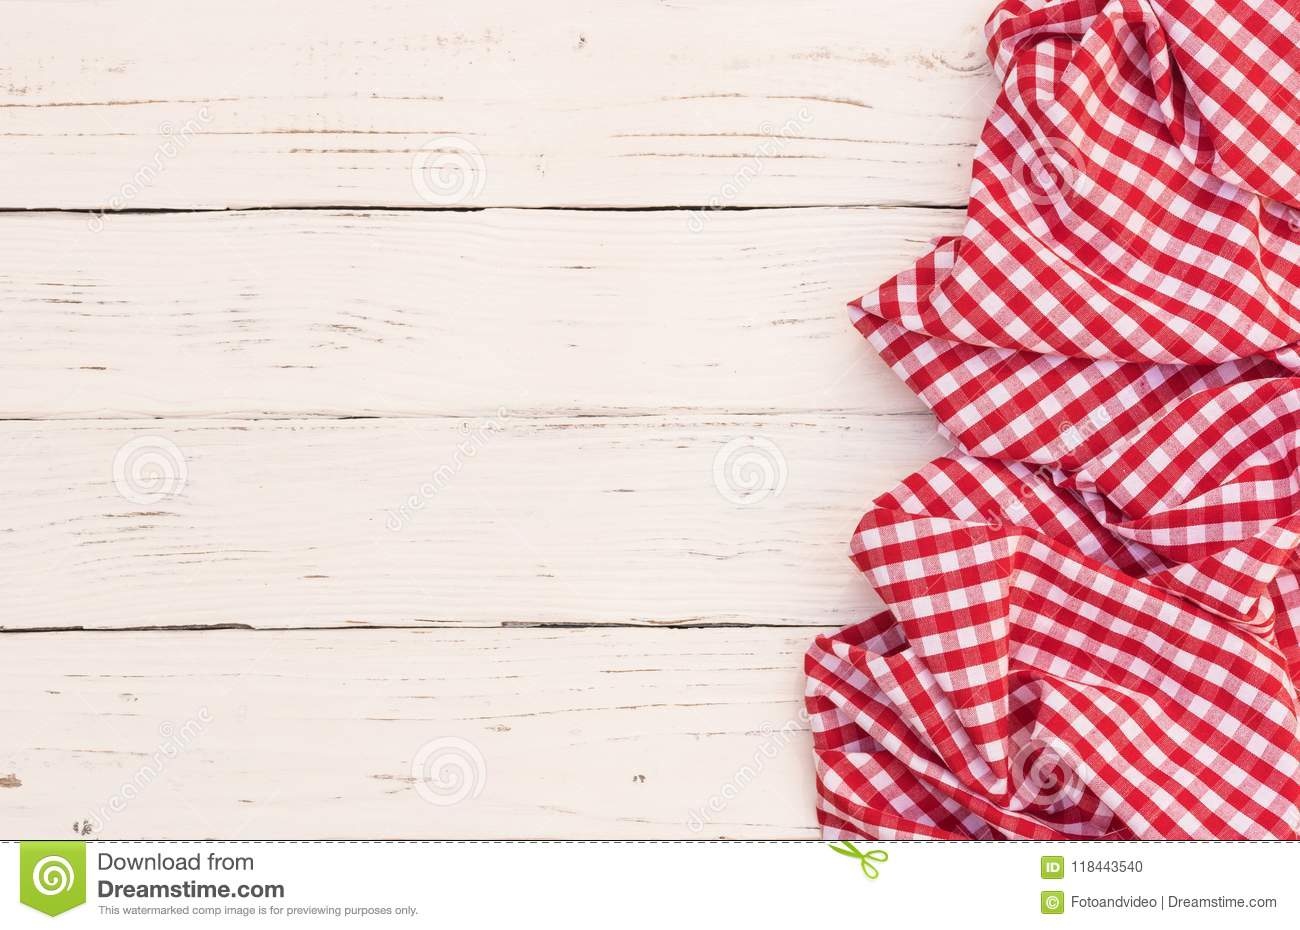 Rustic White Kitchen Table Background With Red Checked Tablecloth Stock Photo - Image Of Backdrop, Pattern: 118443540